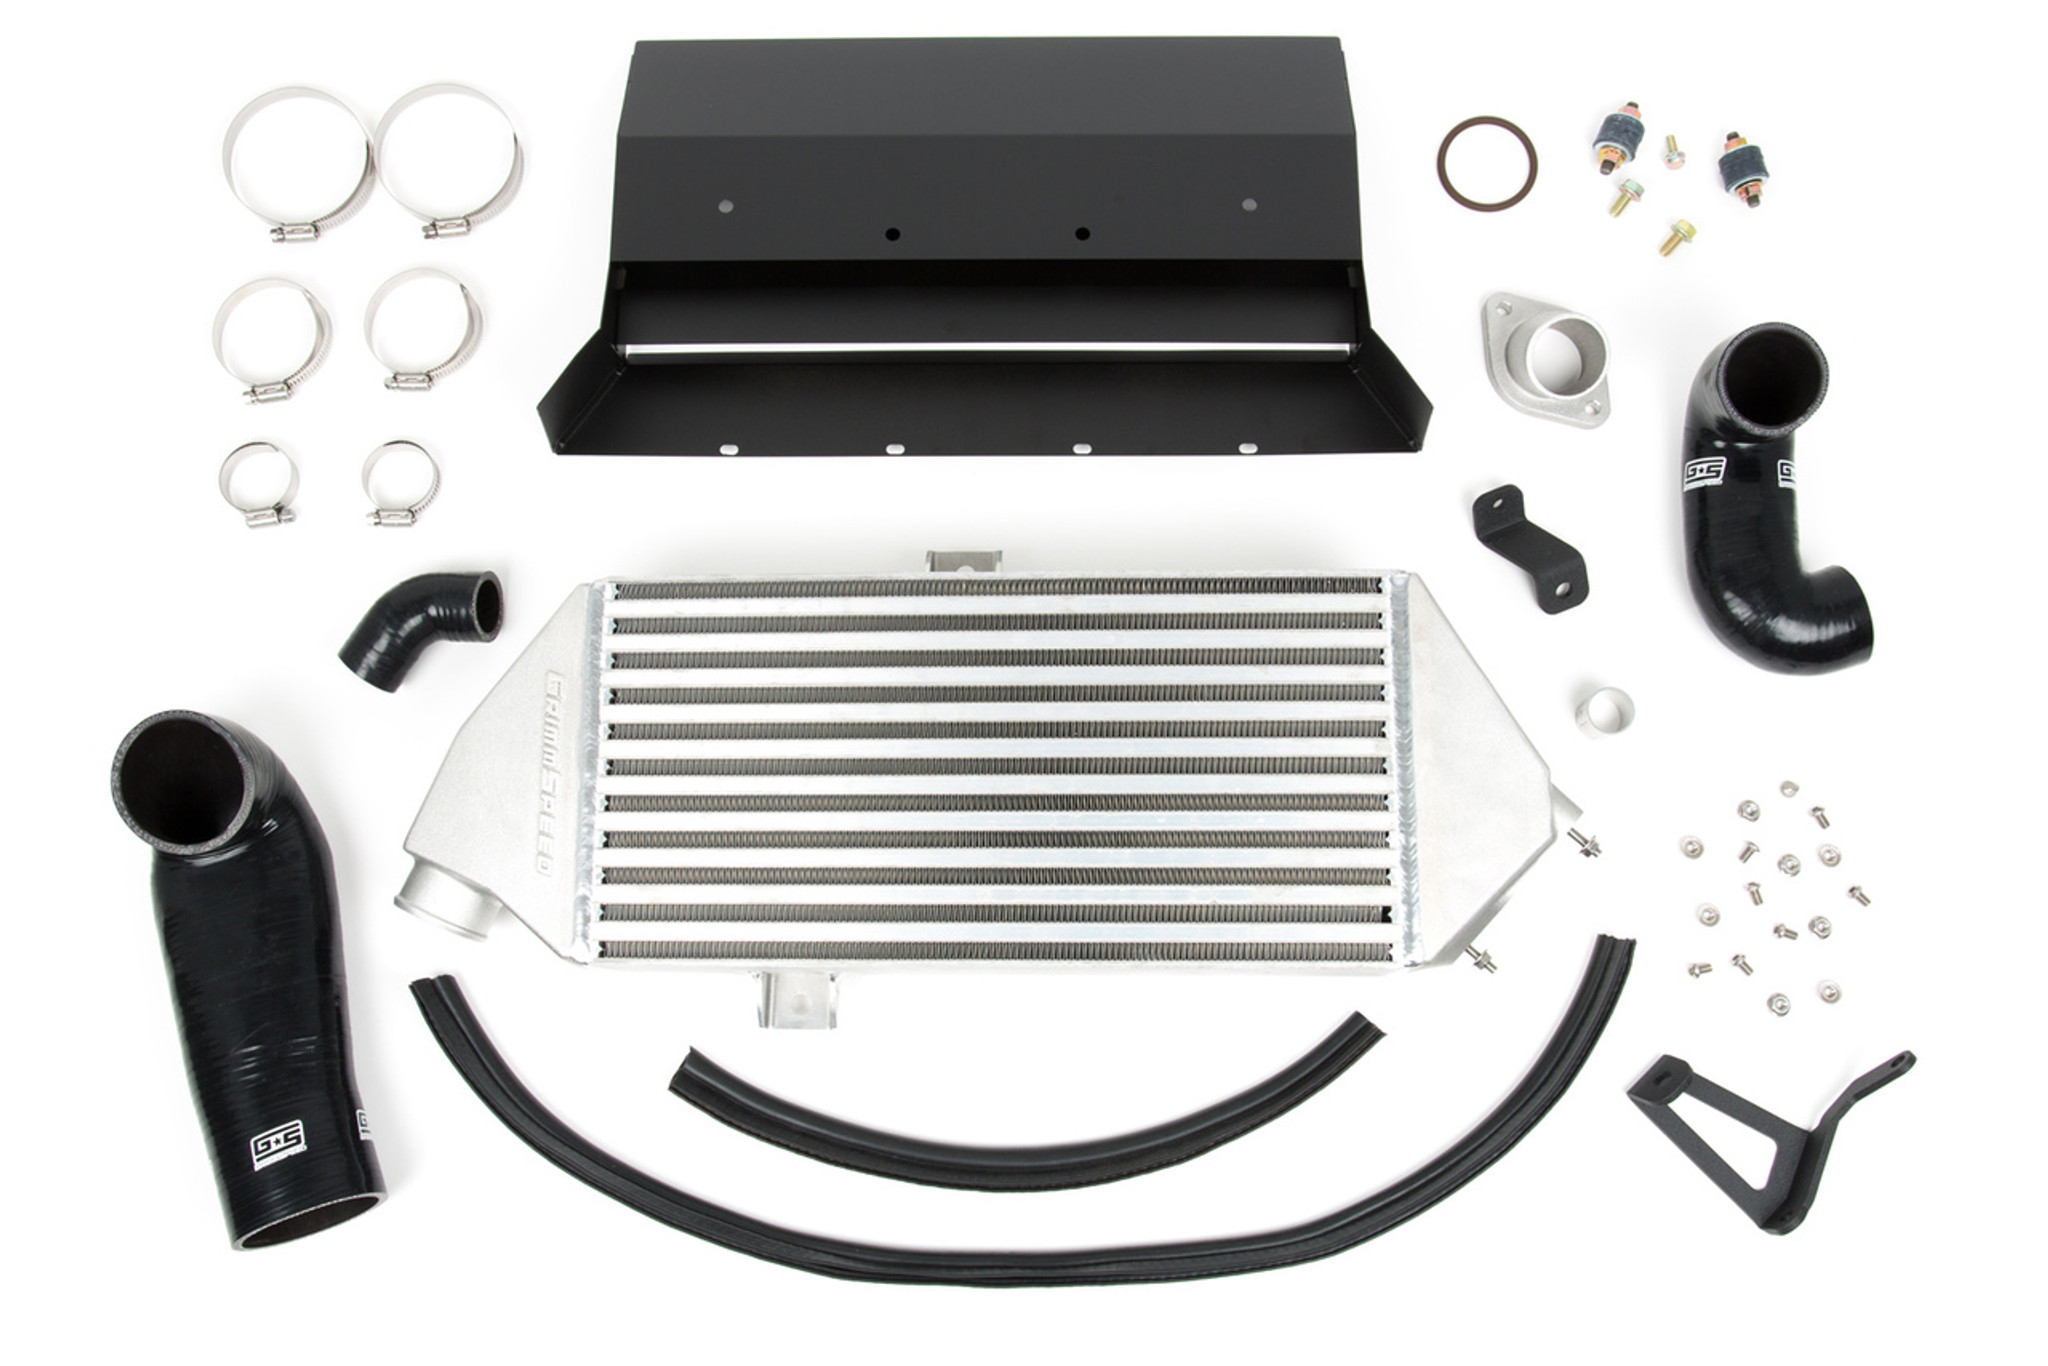 small resolution of top mount intercooler kit subaru 08 14 wrx 05 09 legacy gt diagram of 05 subaru legacy gt engine